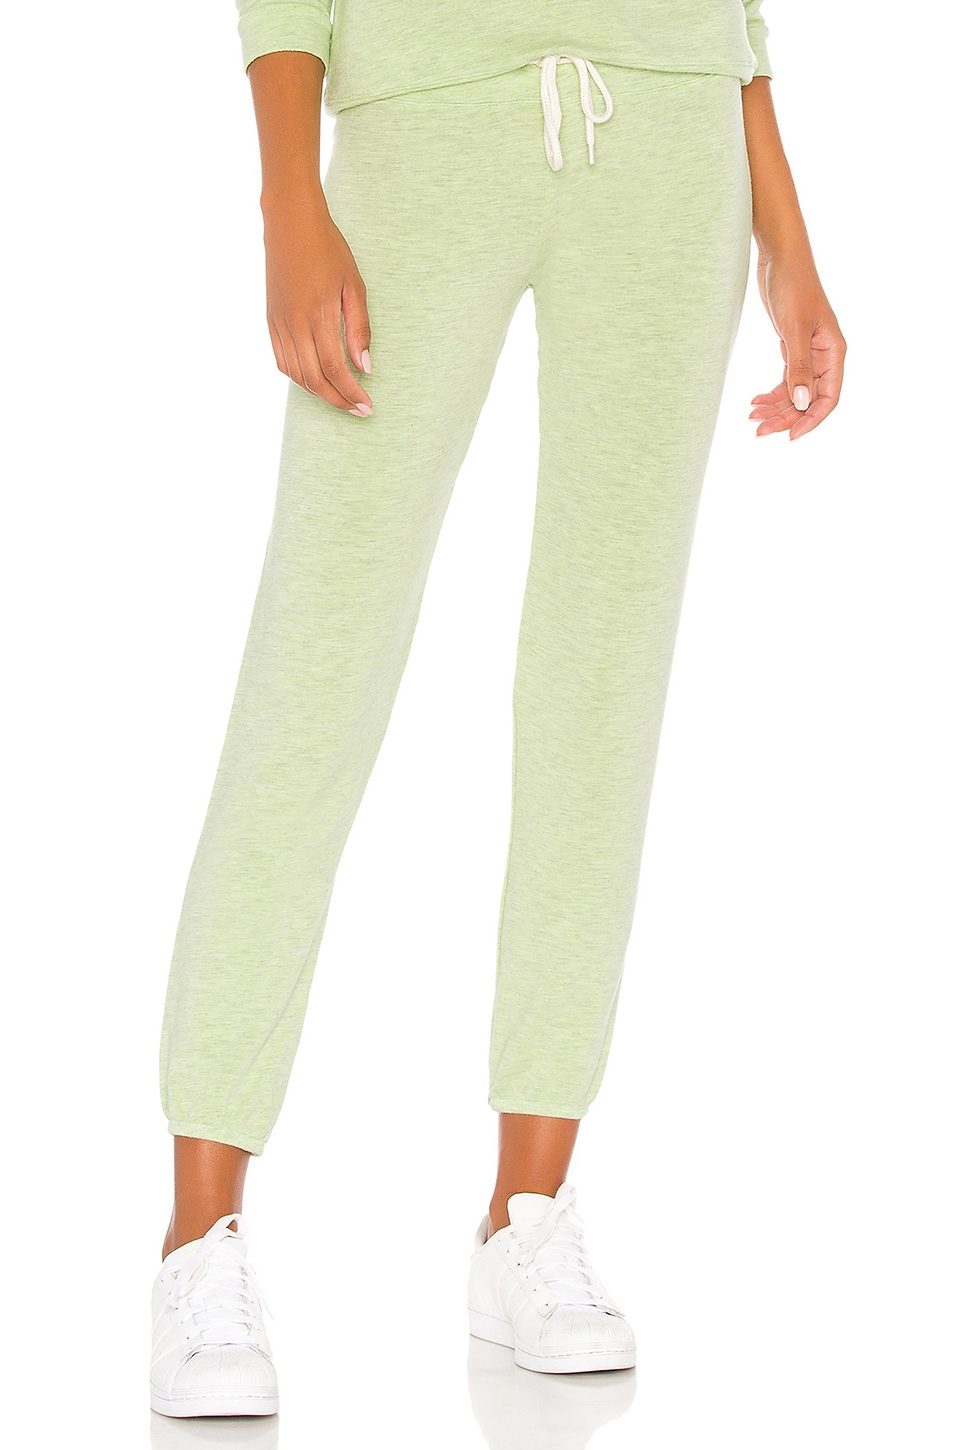 MONROW Vintage Sweats in Wasabi